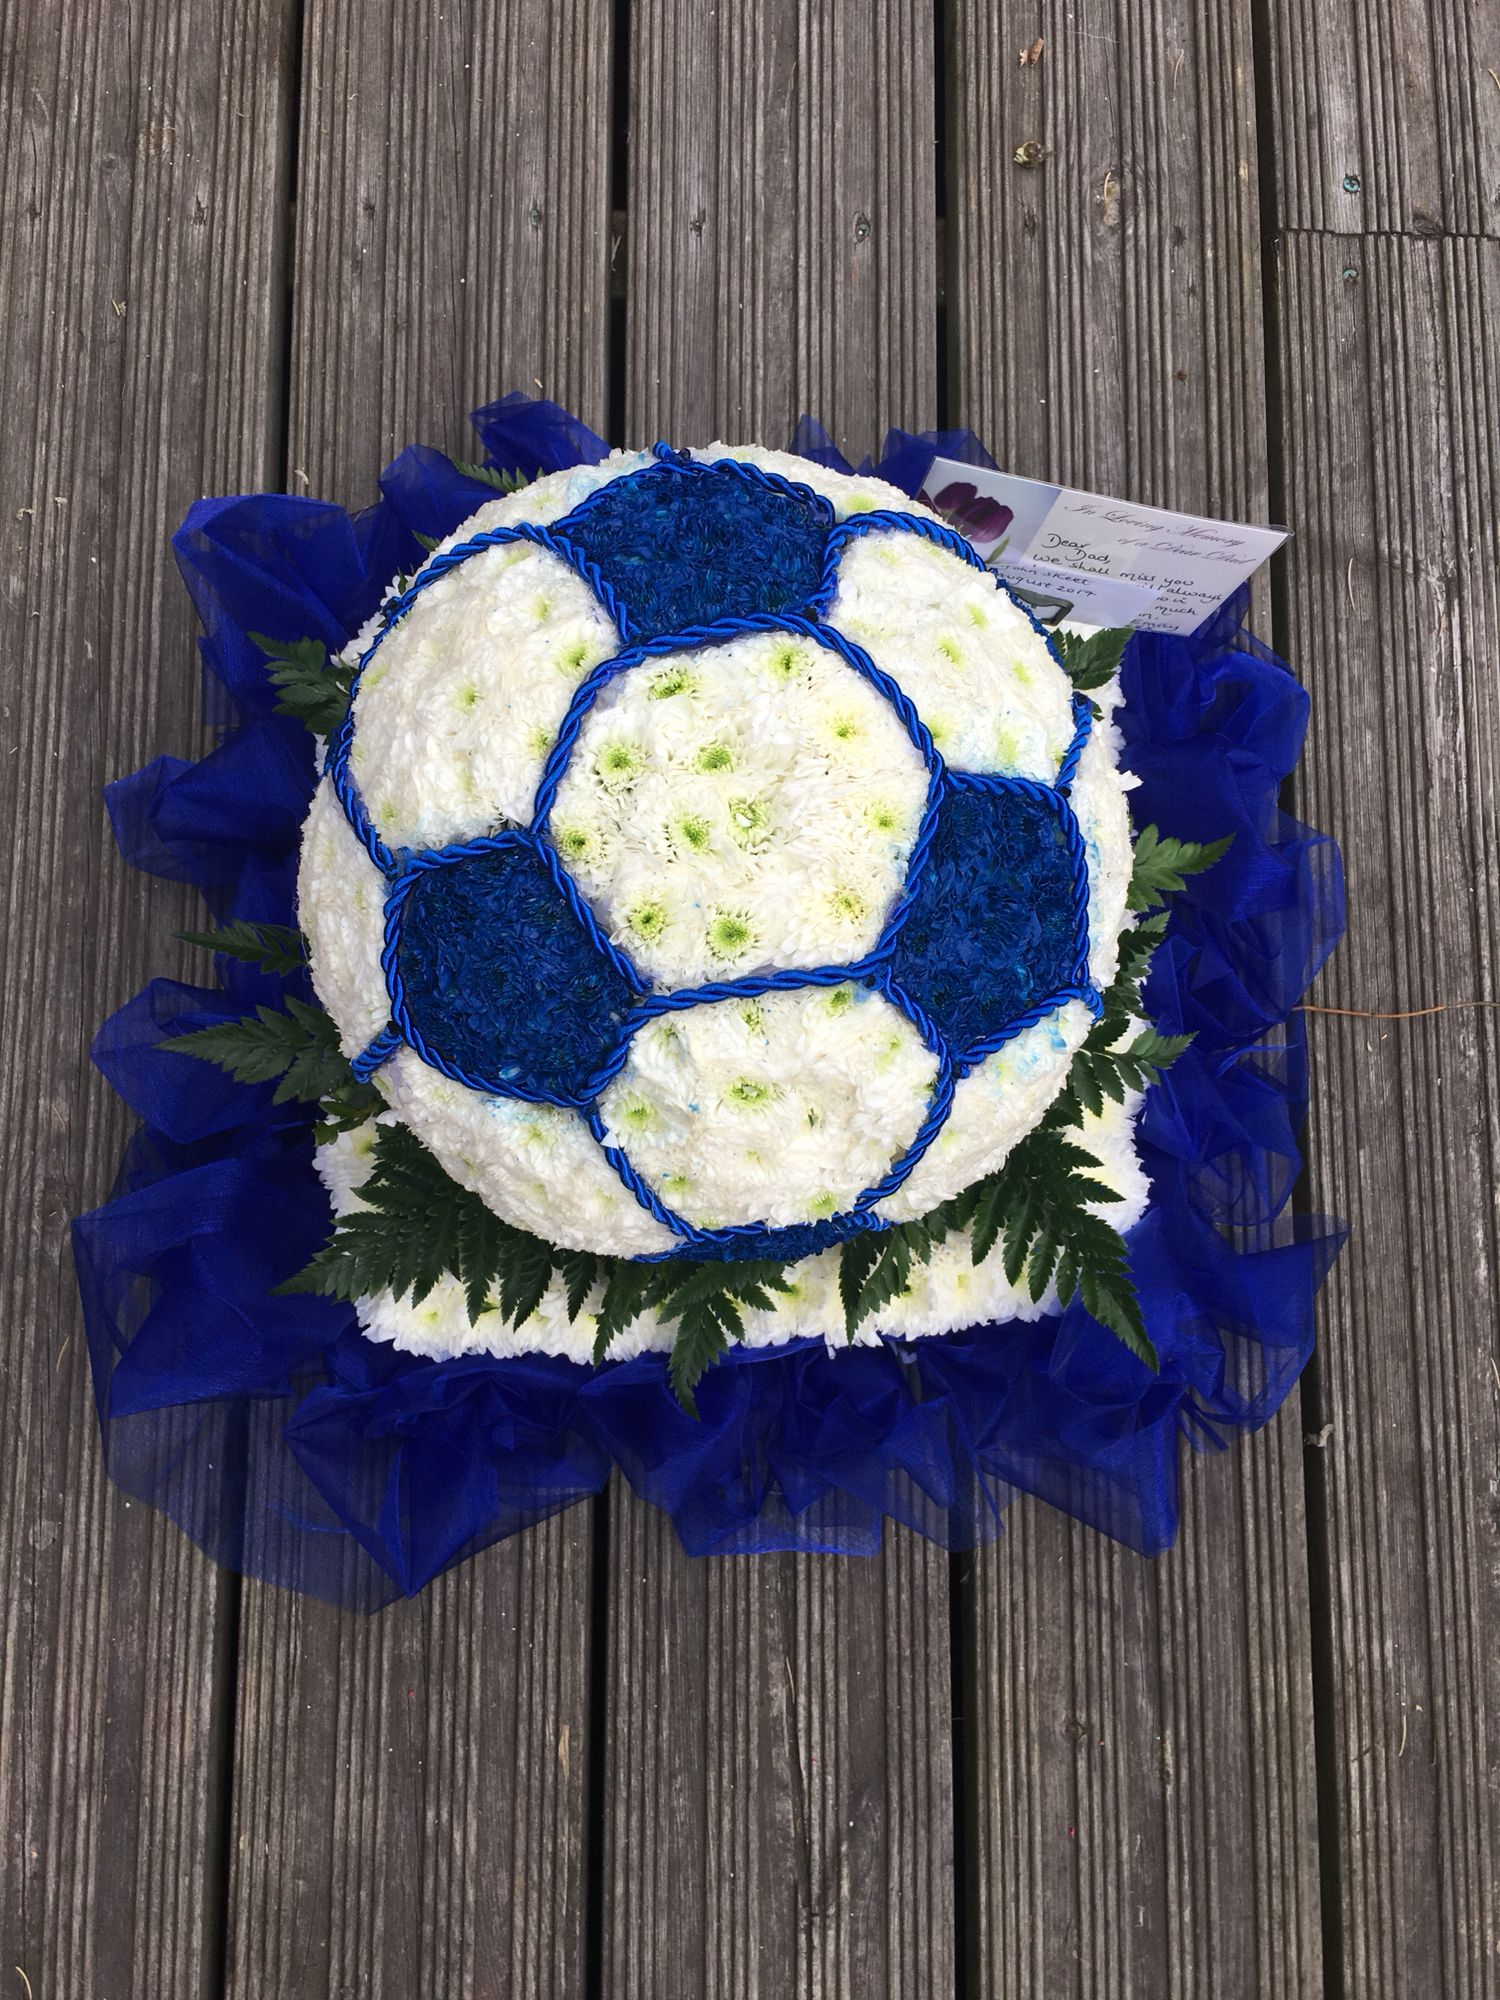 Football funeral flower tribute animalitos y flores pinterest football funeral flower tribute izmirmasajfo